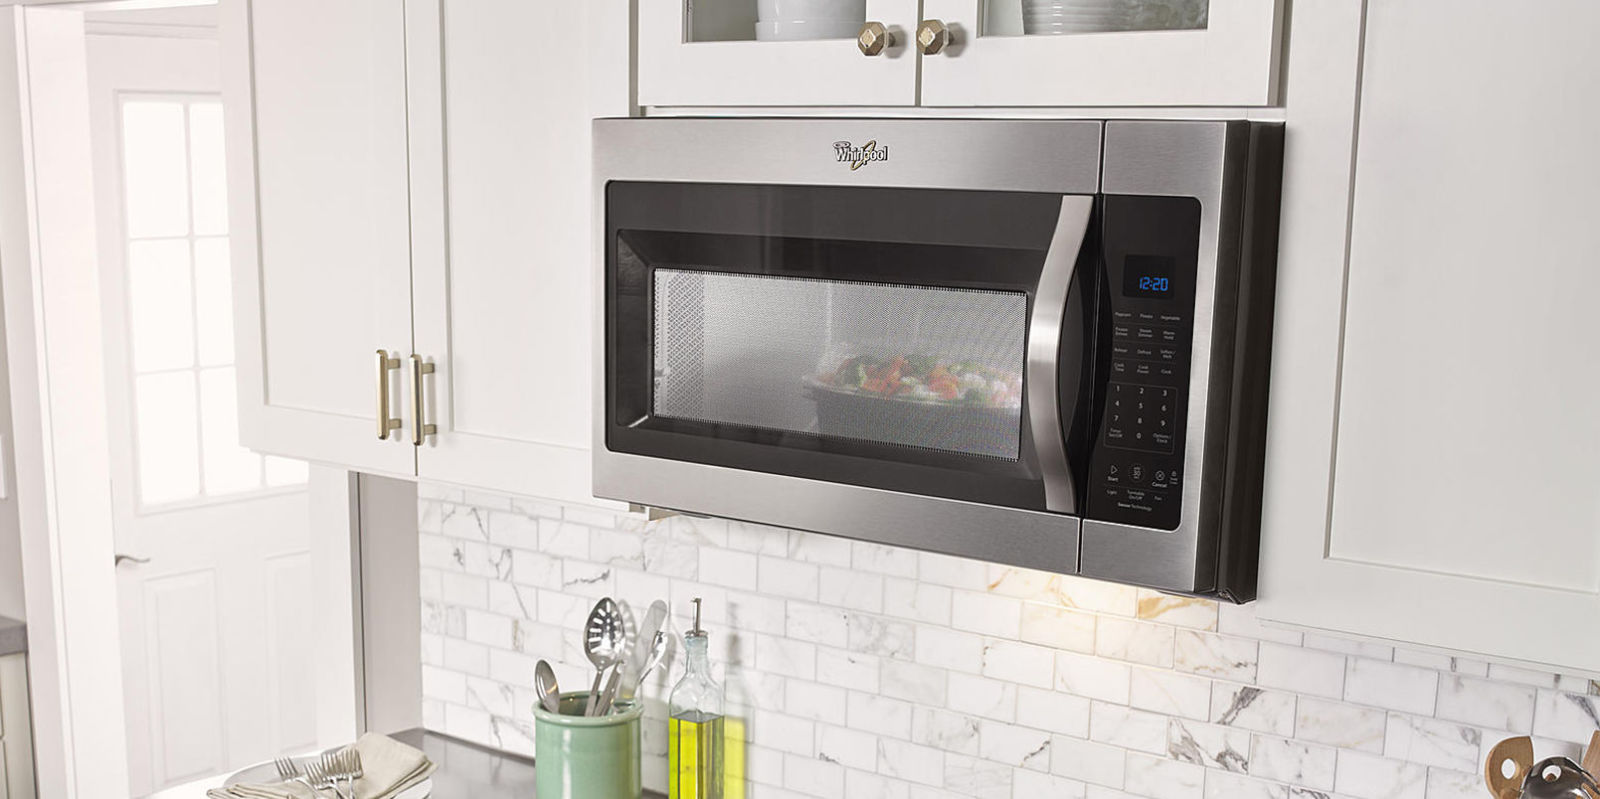 beautiful Best Kitchen Appliances For The Money #9: best microwaves · Small Appliances